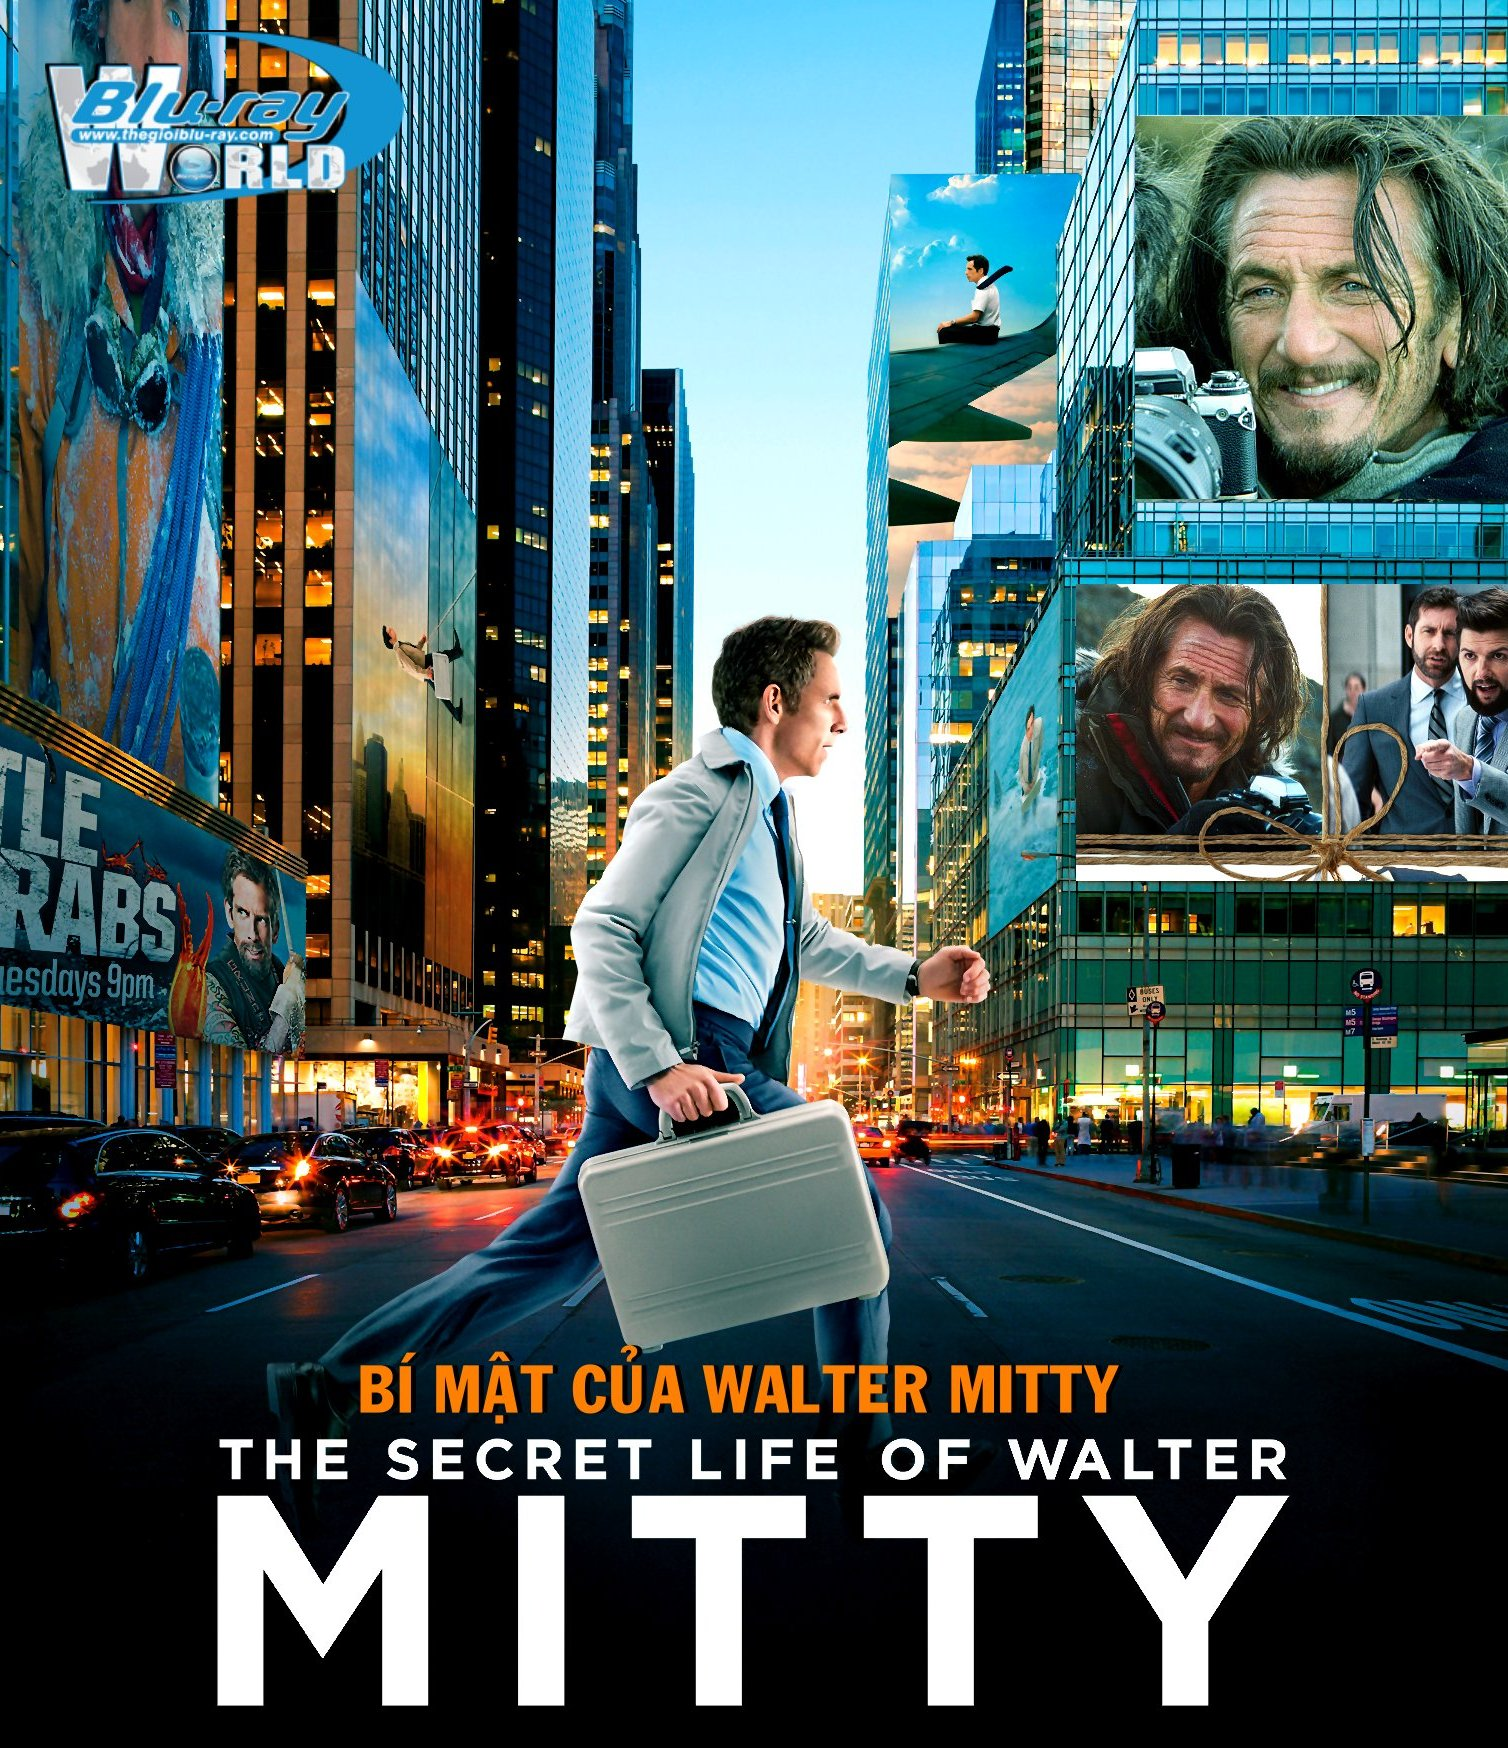 B1690. The Secret Life of Walter Mitty 2013 - BÍ MẬT CỦA WALTER MITTY 2D 25G (DTS-HD MA 5.1)